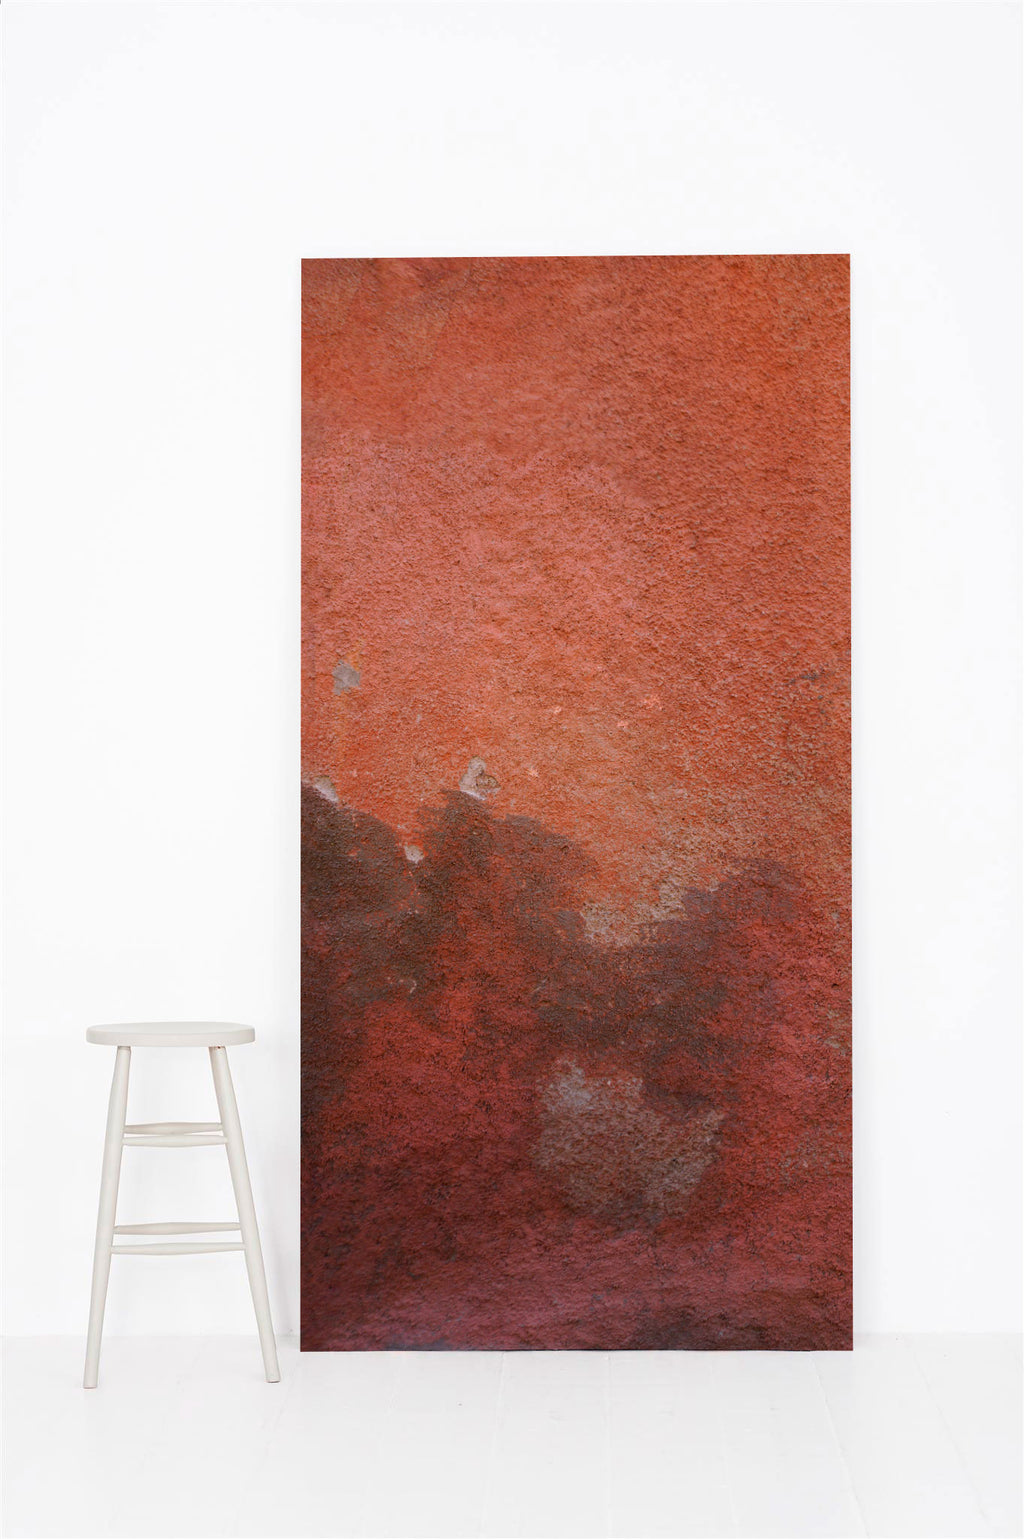 #0000 | Plaster | Two Peach Pink Walls